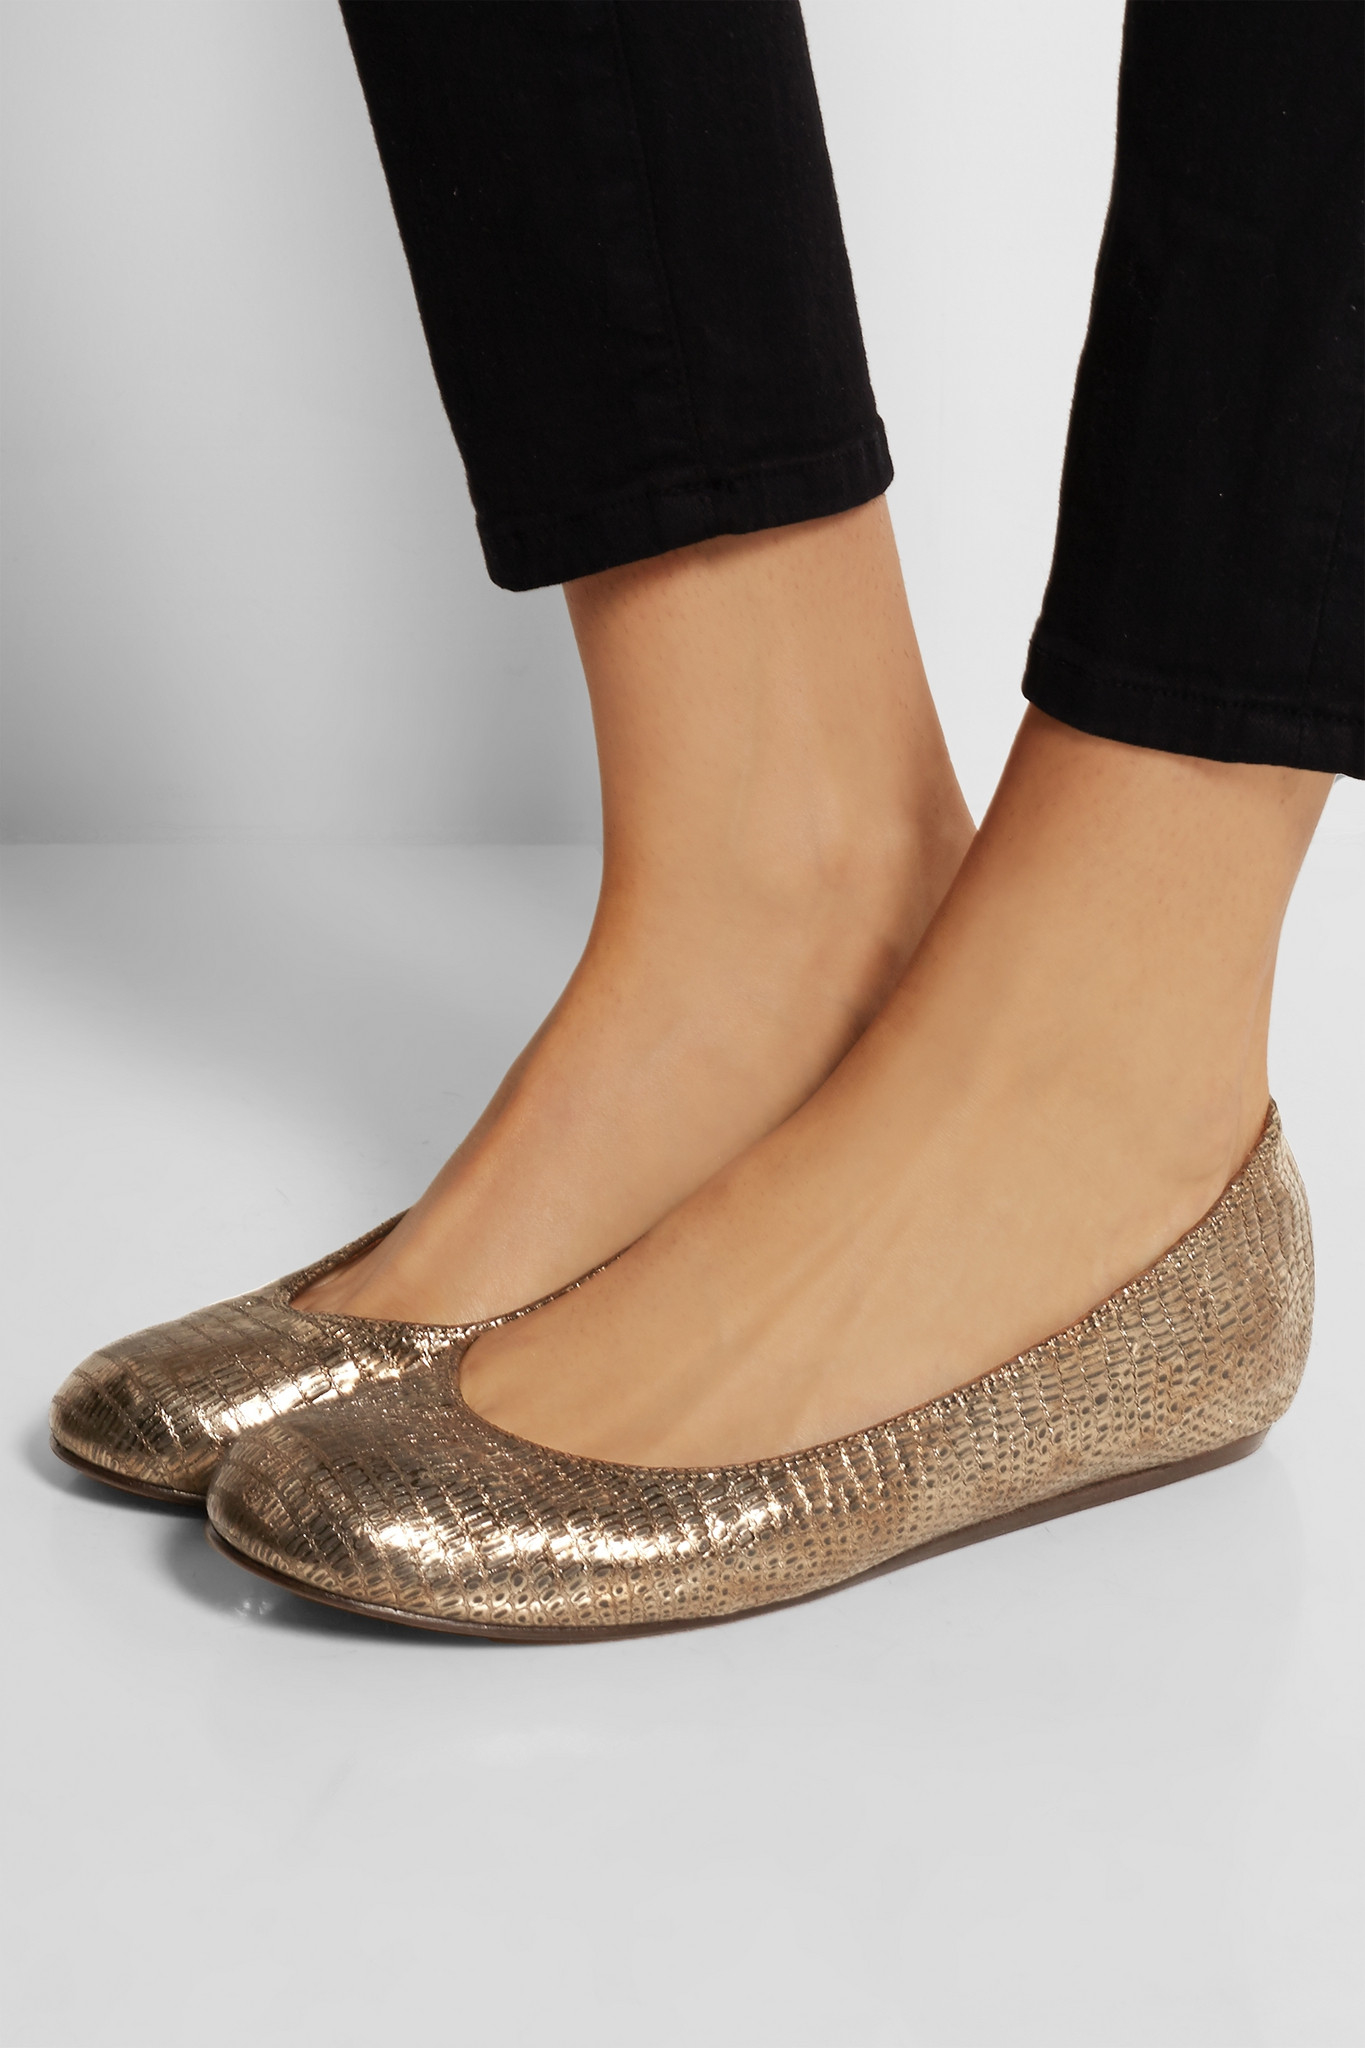 Lanvin Metallic Lizard Effect Leather Ballet Flats In